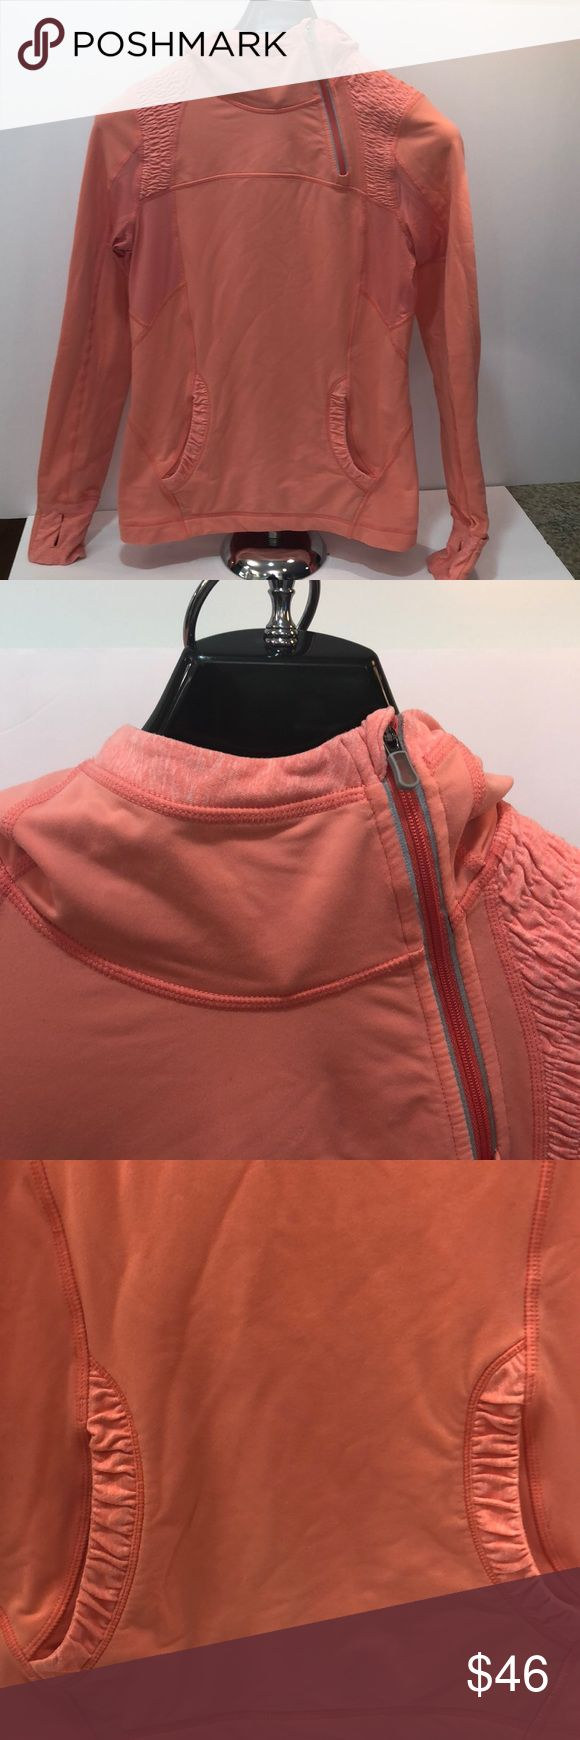 Lululemon pullover with ponytail hole, size 6 Pretty peachy pink (pinker than the pictures) Lululemon Athletica pullover with hood and ponytail hole. Size 6. Has two front pockets, one with inner small key/money pocket and back zip pocket. Make an offer! lululemon athletica Tops Sweatshirts & Hoodies